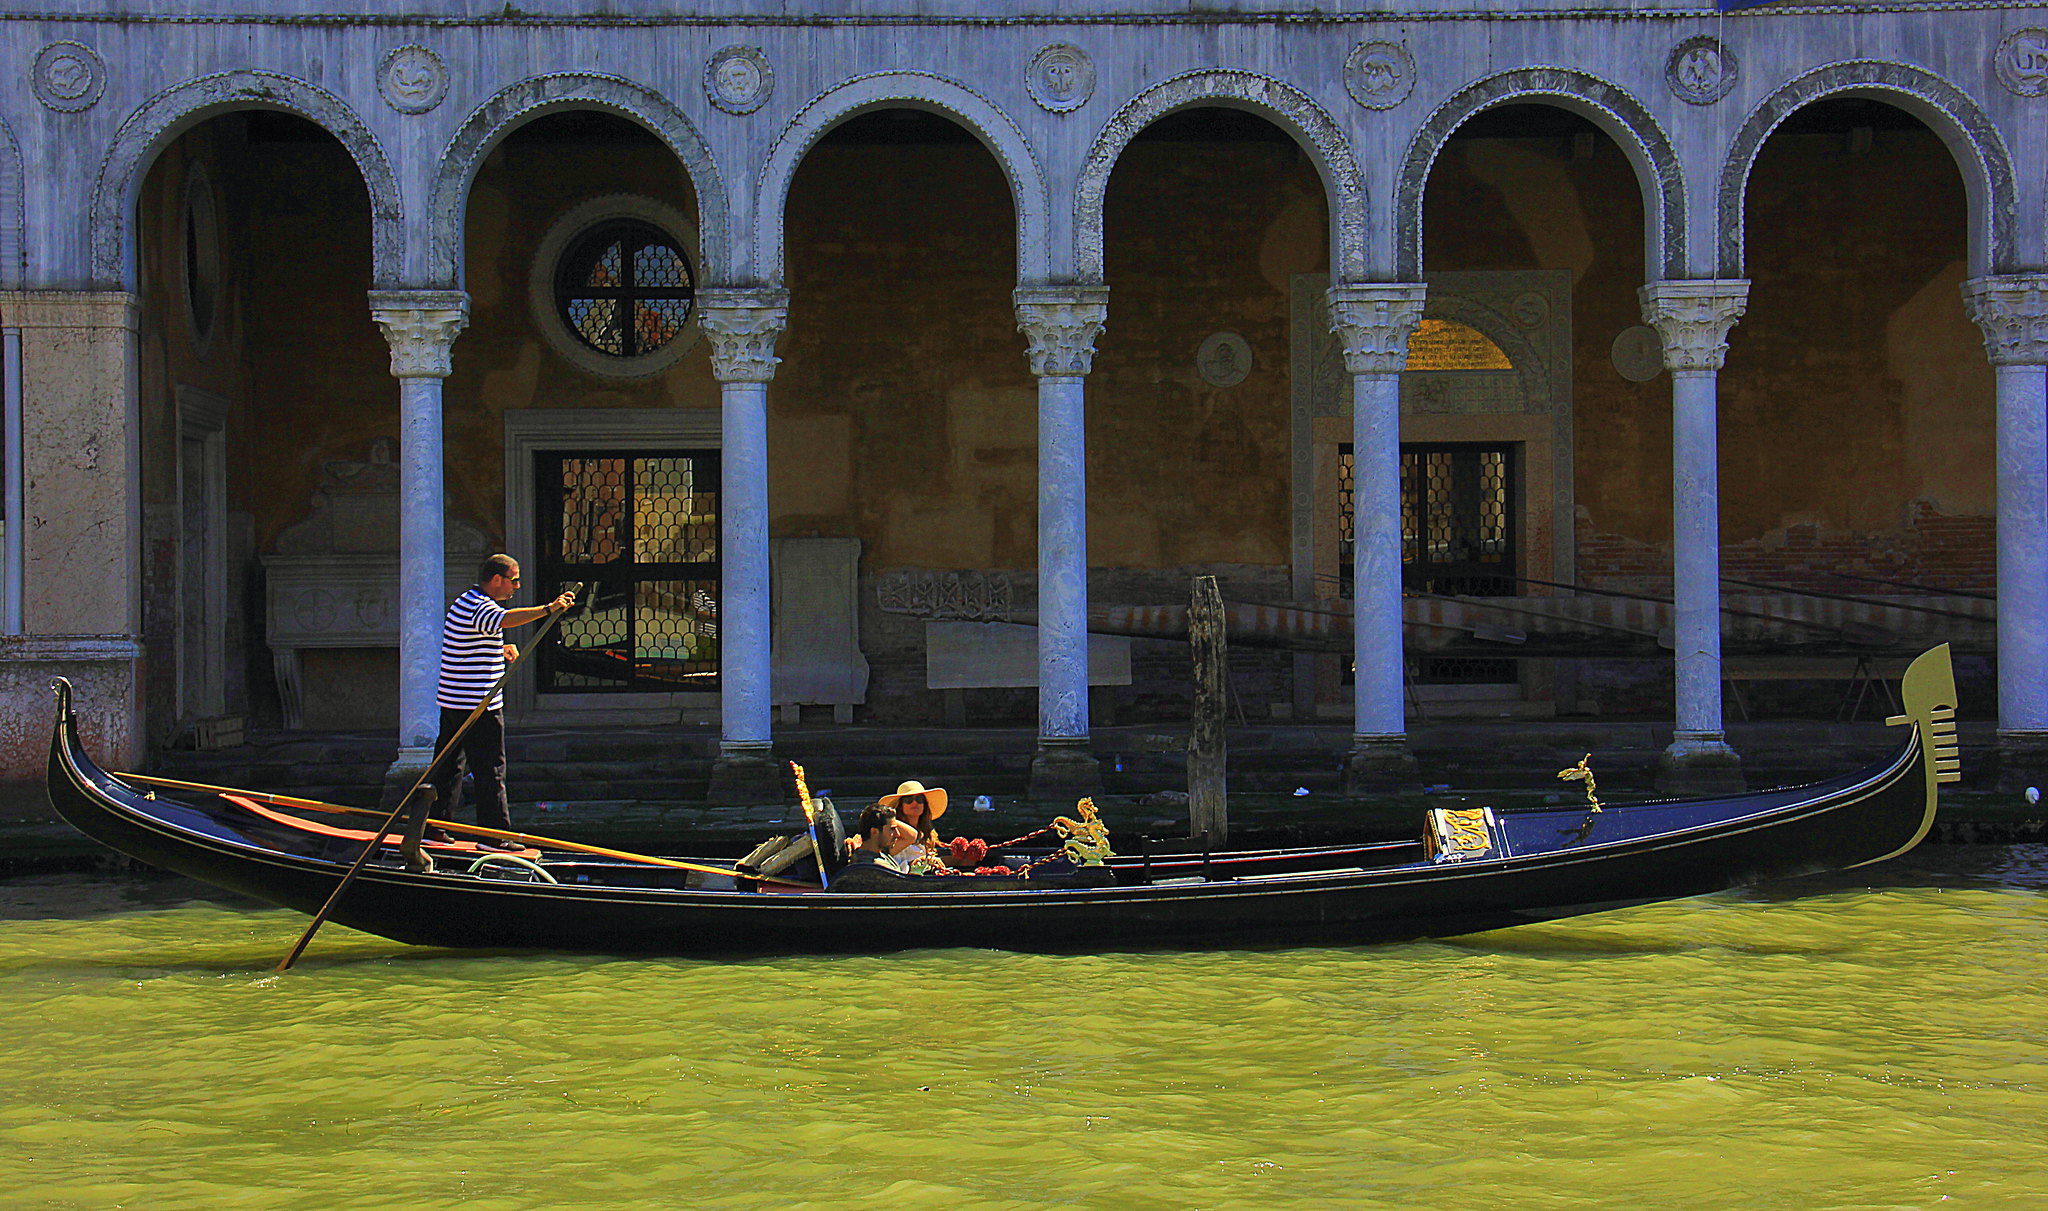 A gondola ride is a must do thing on your Venice trip